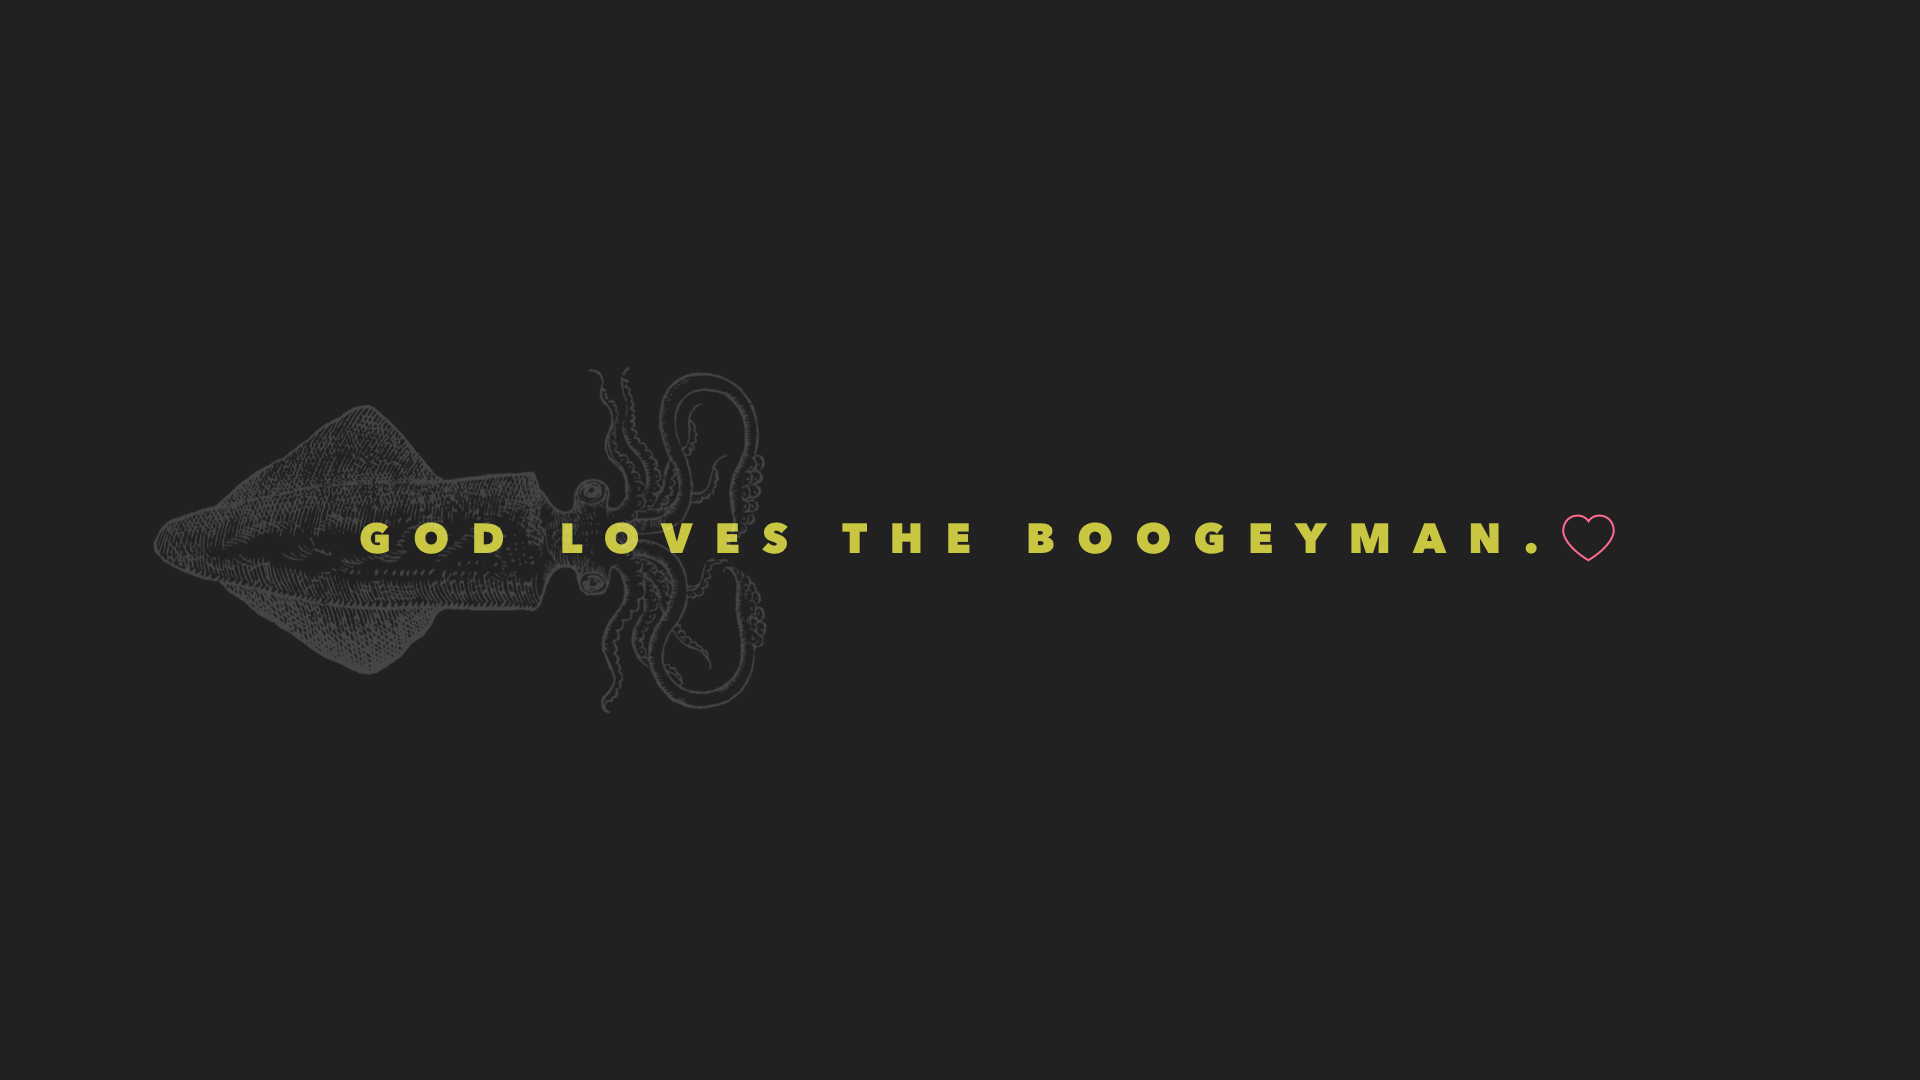 Who's your boogeyman?